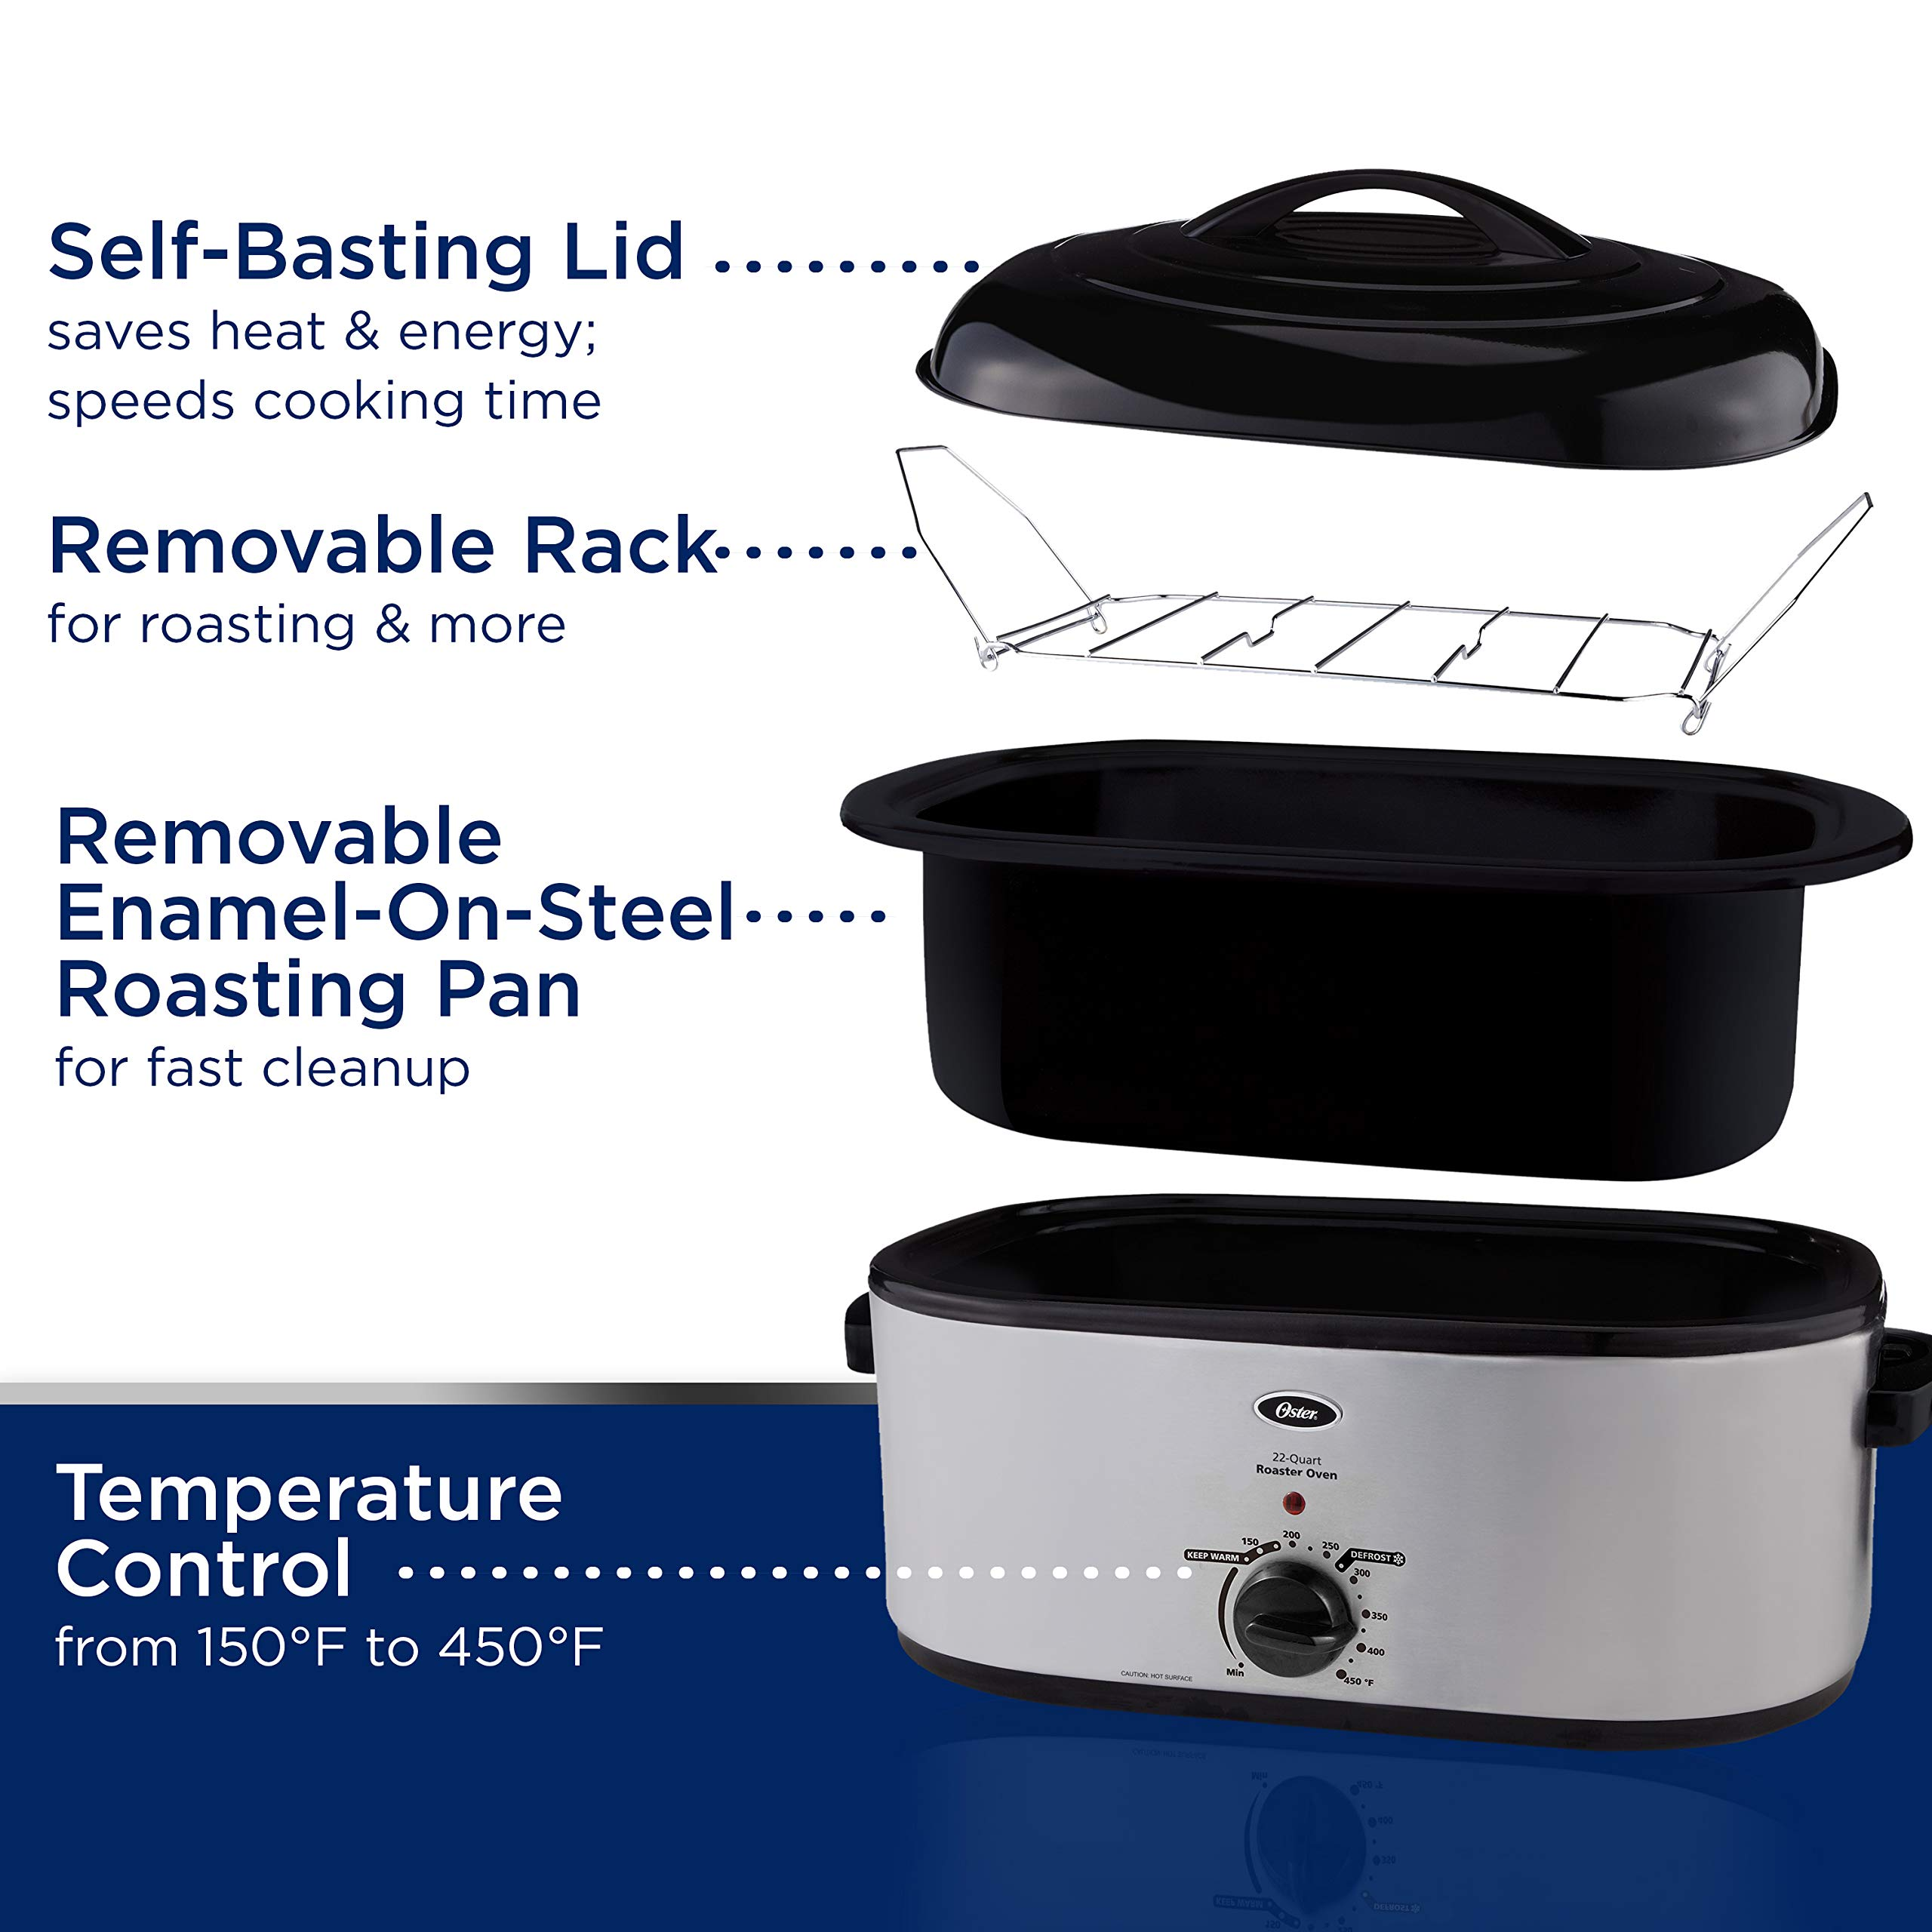 Oster 18 Quart Roaster Oven With Self Basting Lid Black: Oster Roaster Oven With Self-Basting Lid, 22-Quart